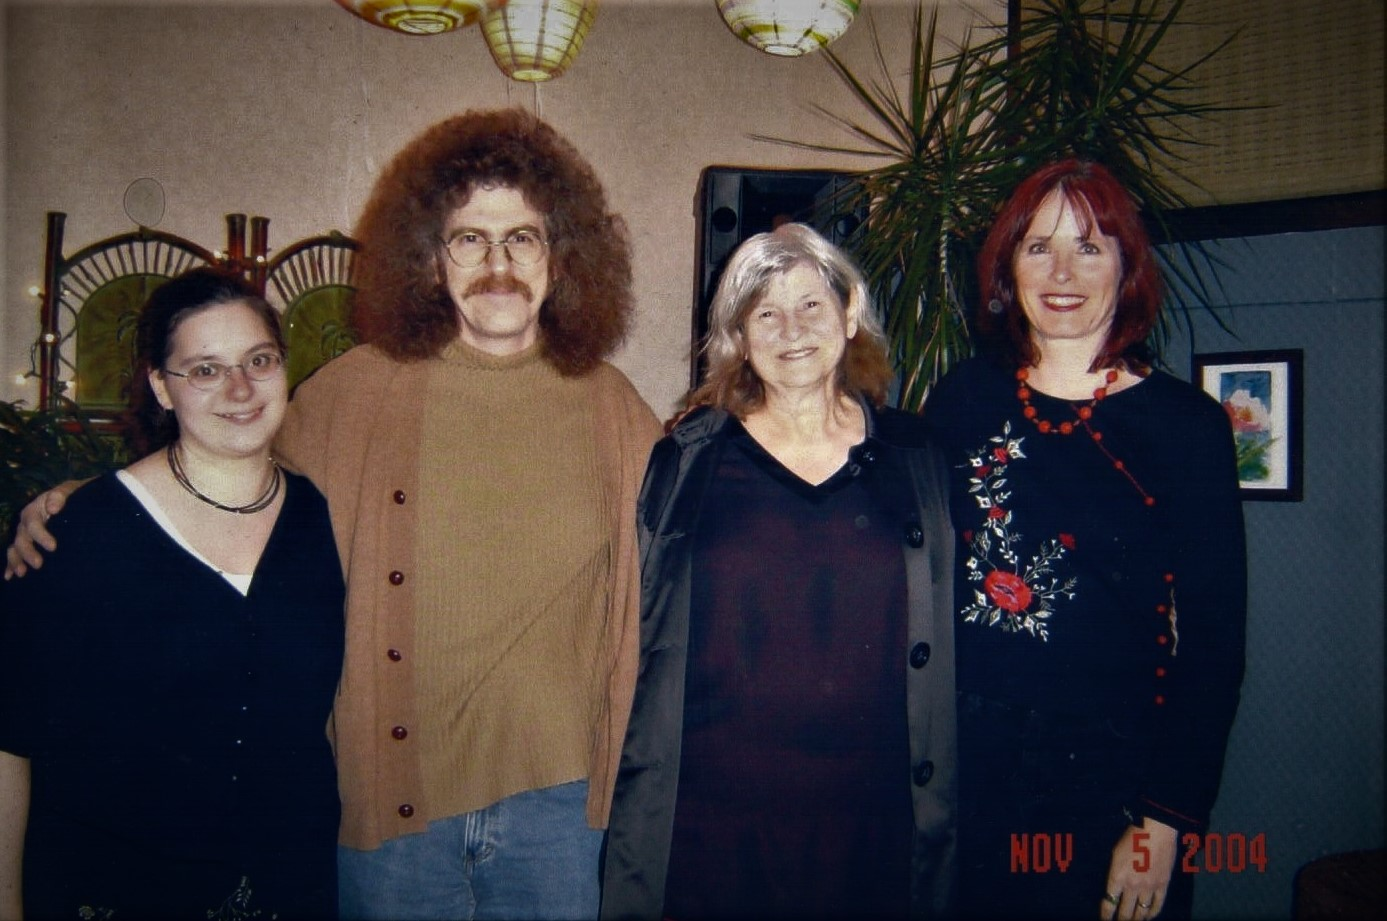 Left to right: Heather Grady (friend), George Kalamaras, Judith Johnson, and Mary Ann Cain (George's wife), following a reading that Judy and Mary Ann gave at the Three Rivers Food Co-op, Fort Wayne, Indiana, November, 2004.